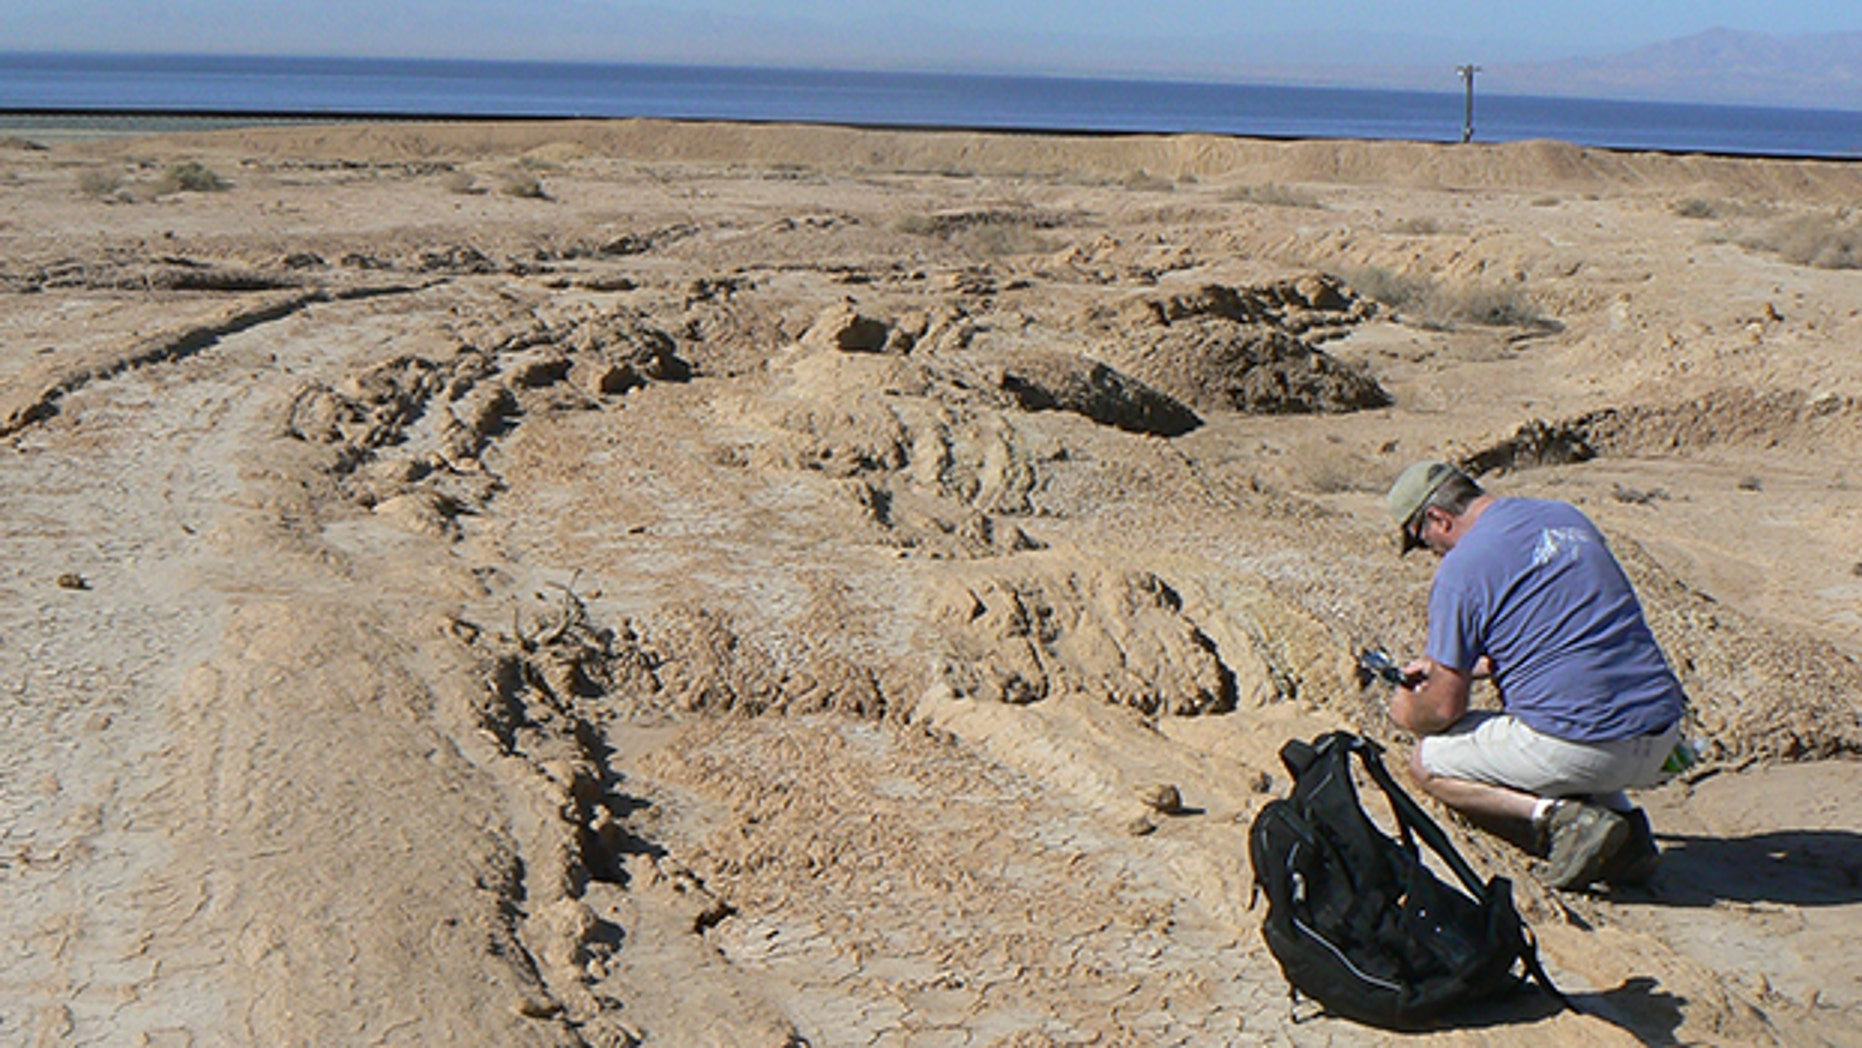 Geologist Neal Driscoll taking measurements of the onshore sediment layers along the eastern edge of the Salton Sea.